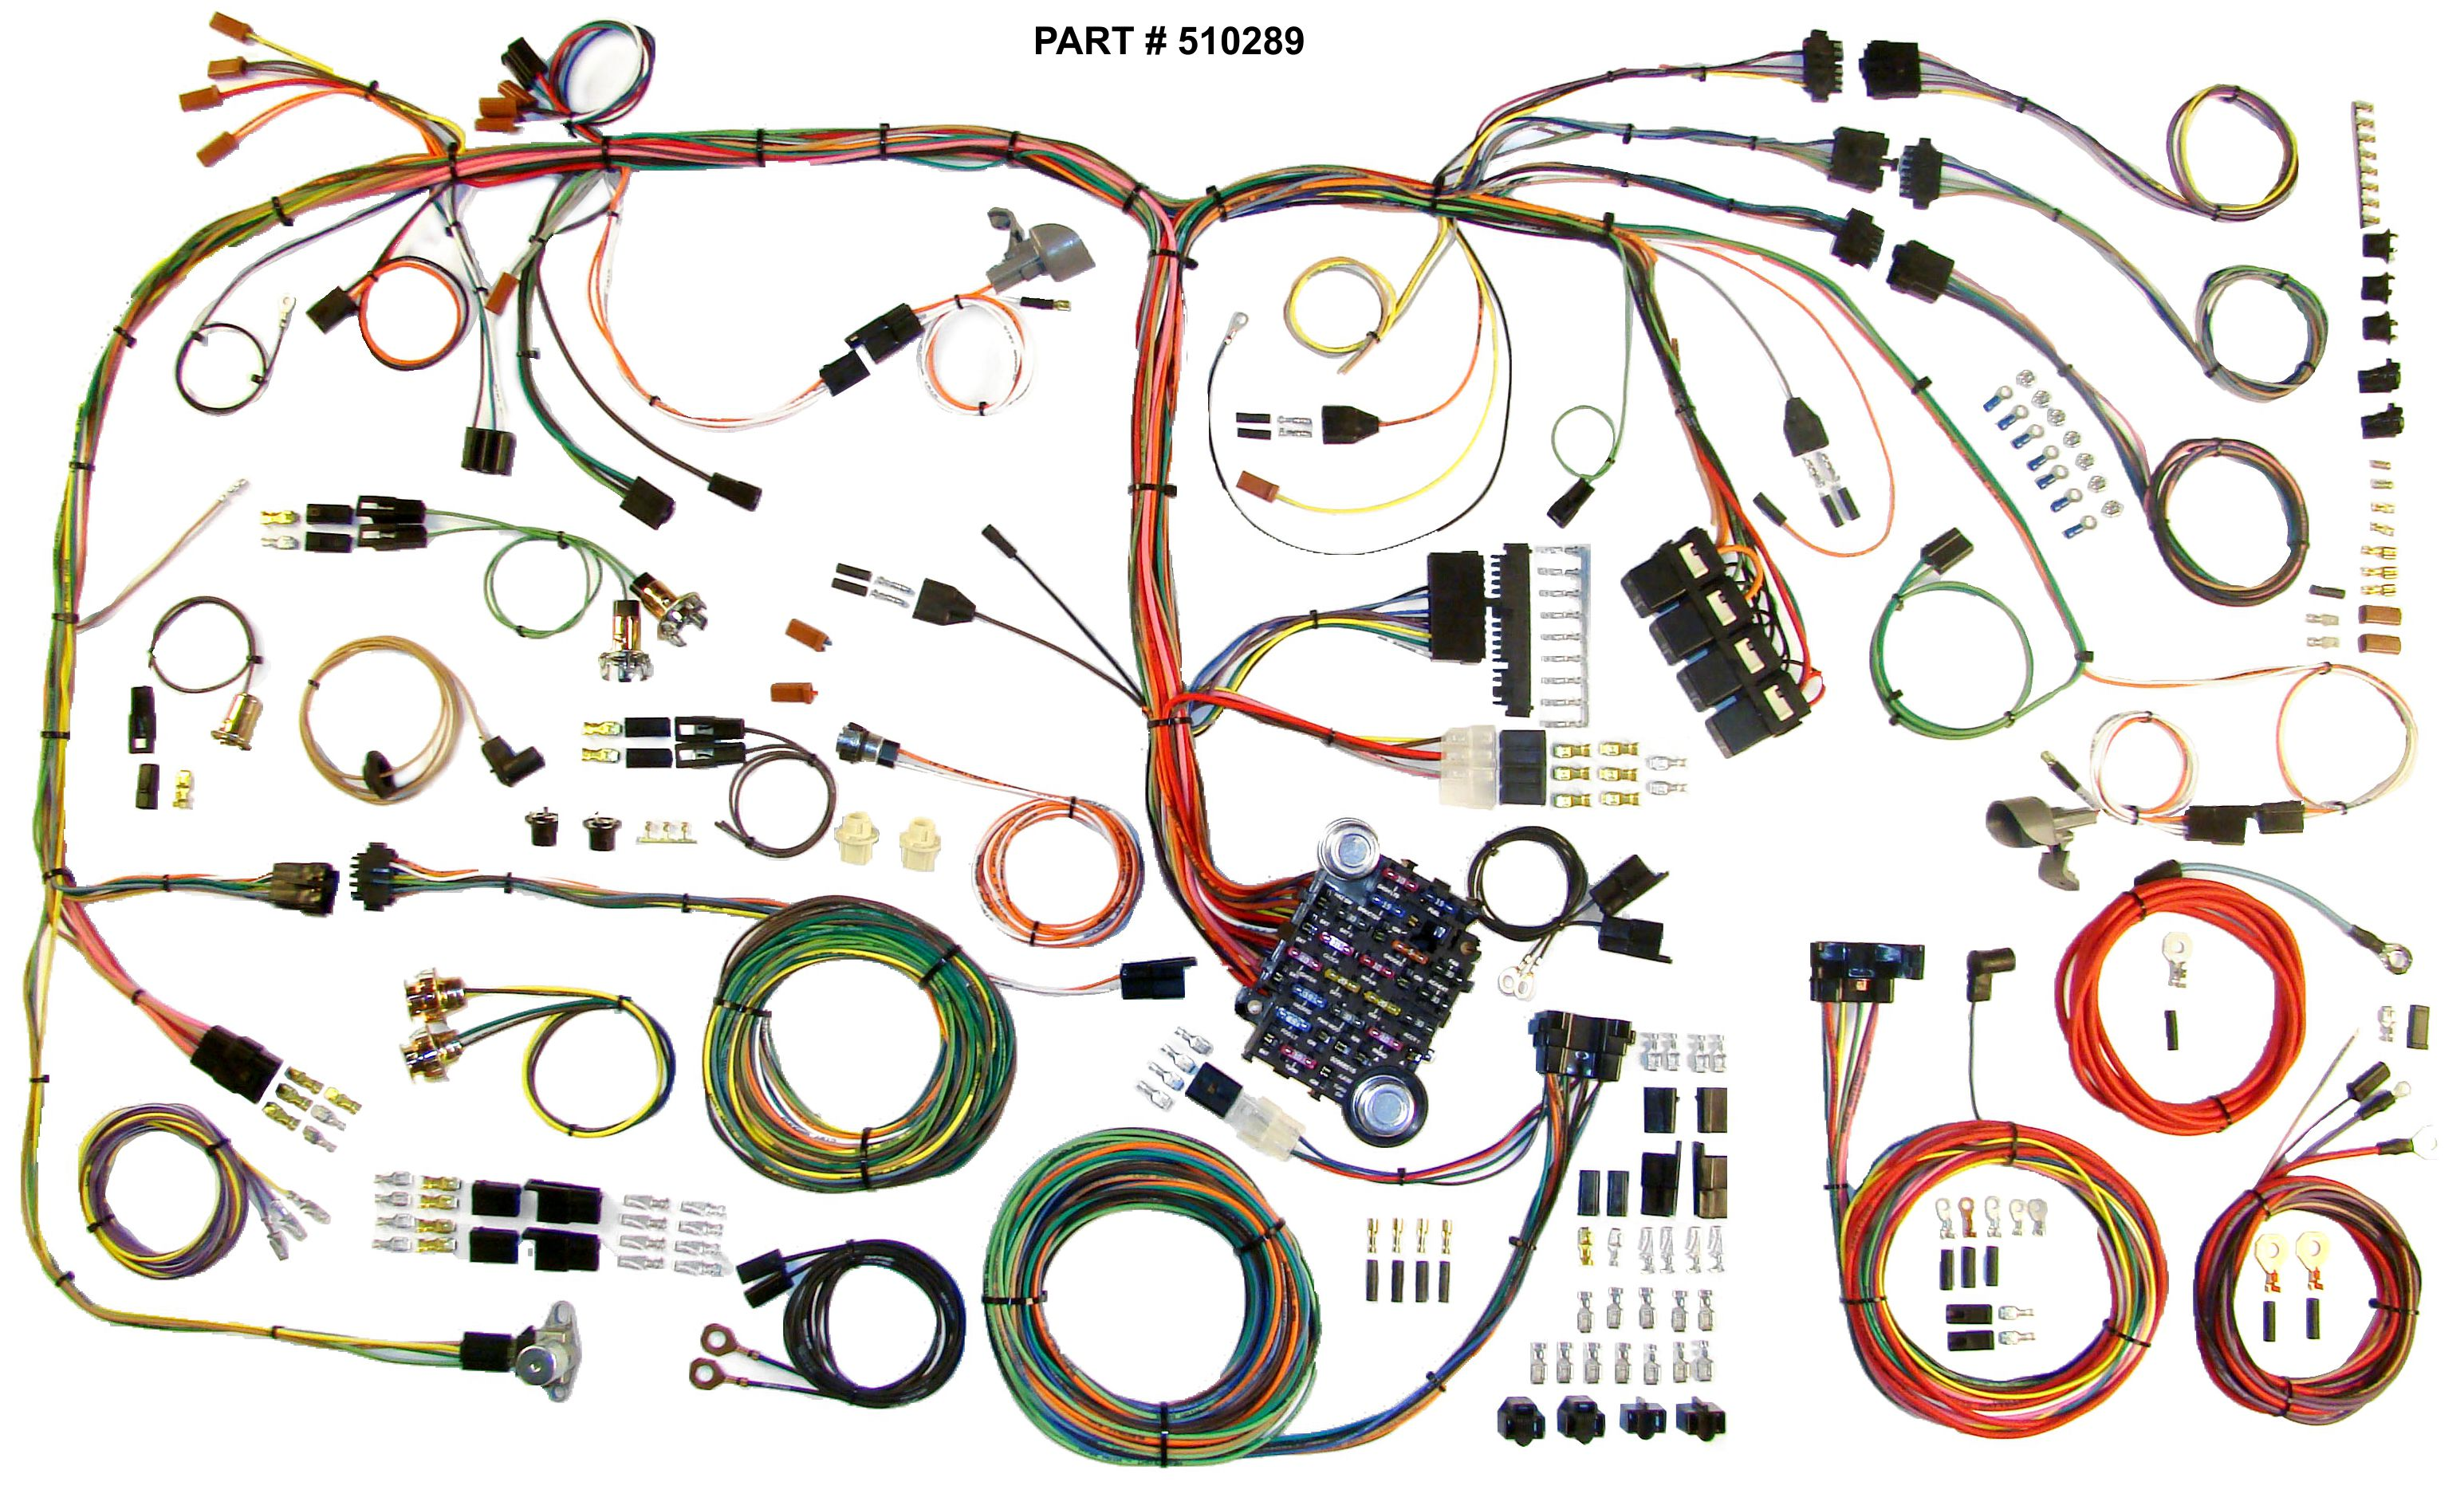 1970 1974 plymouth barracuda & dodge challenger restomod wiring system  electrical fuse box 1970 74 chrysler